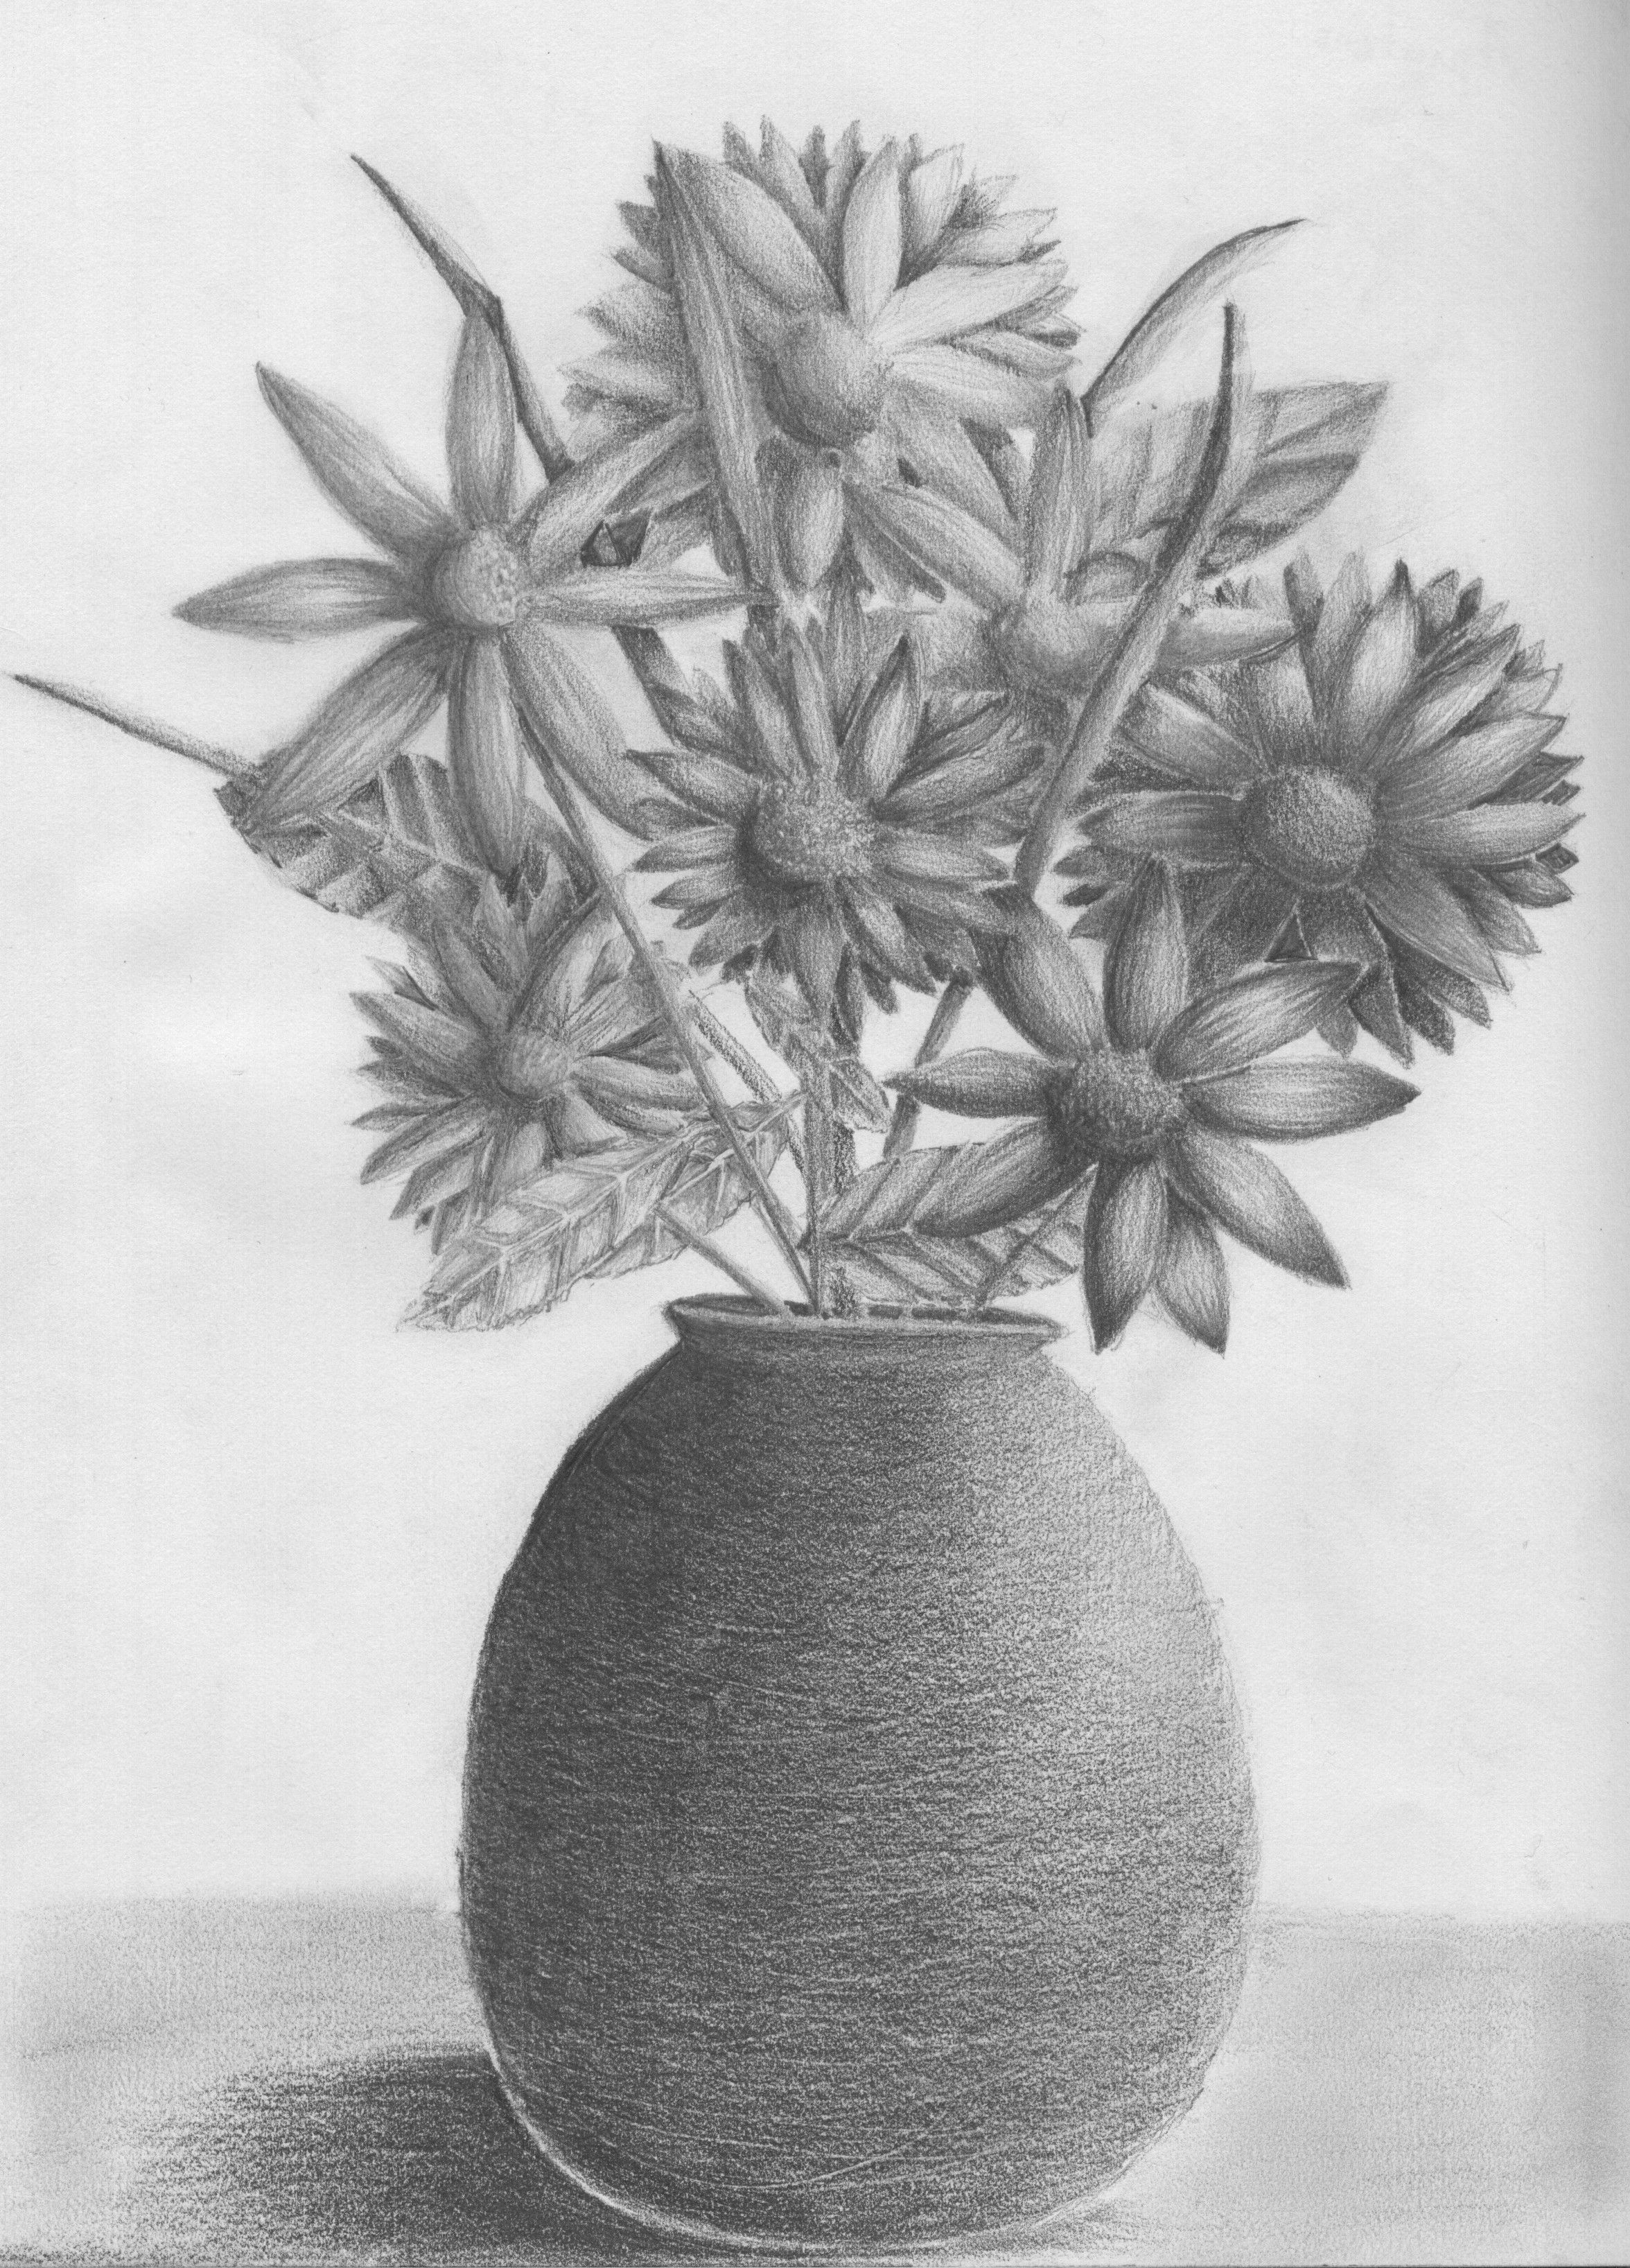 Flower Vase Pencil Drawing class= Flower vase drawing